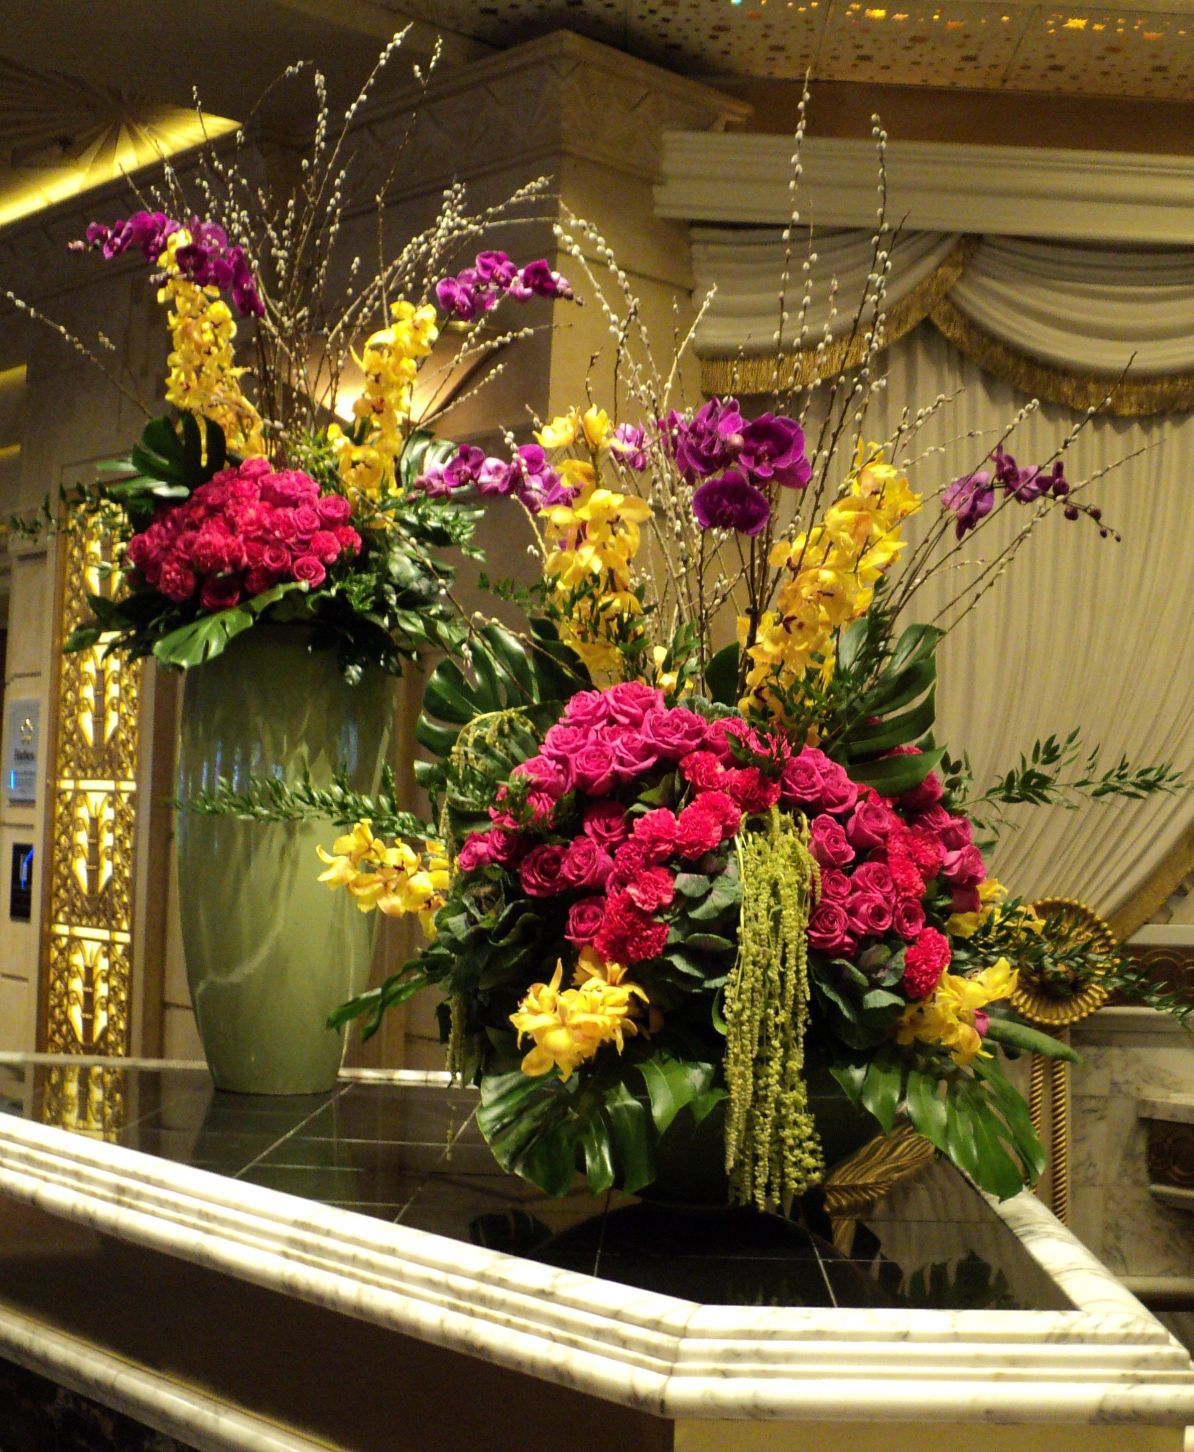 Hotel Foyer Flower Arrangements : Orchids orchid displays in resort hotels home and gardens